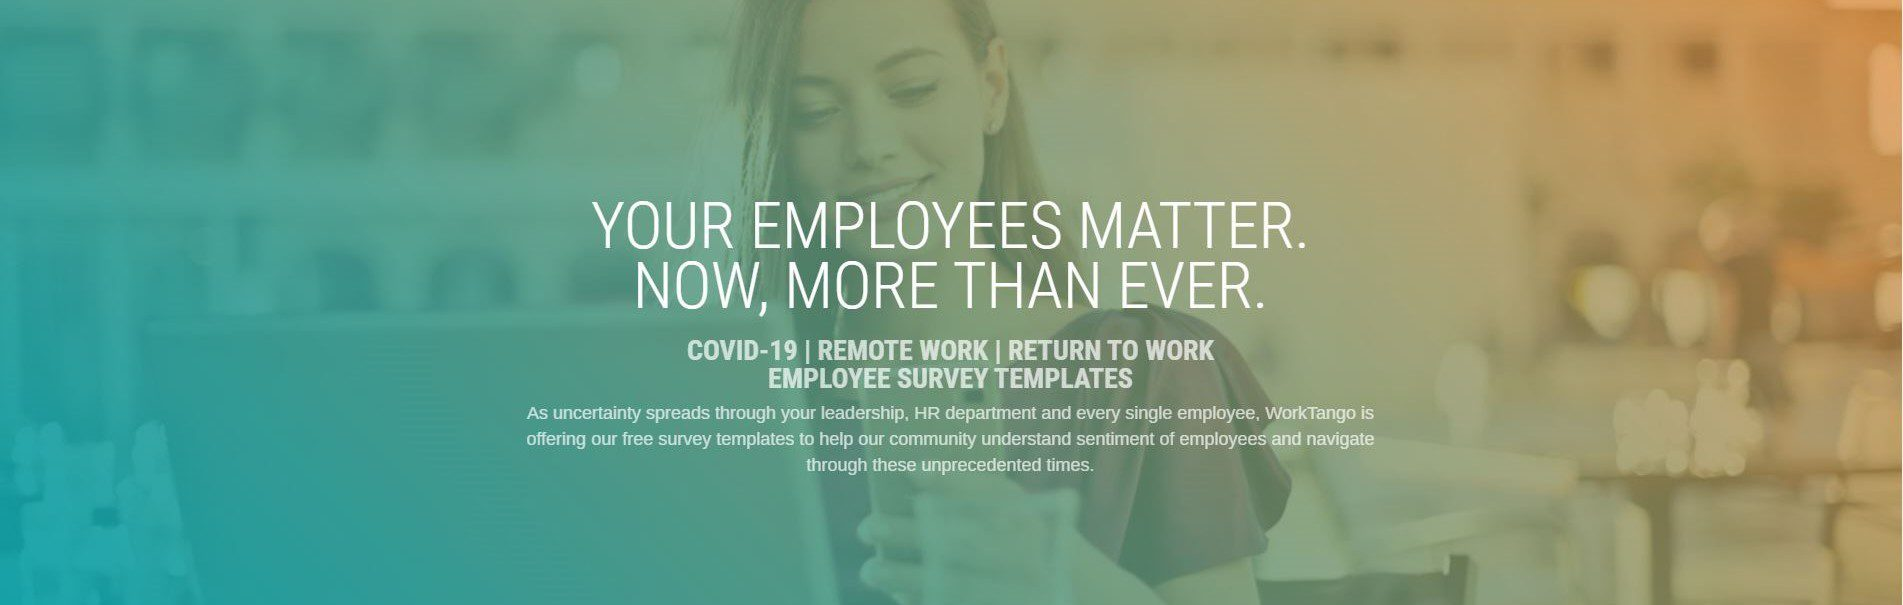 Return to Work Remote Work Psychological Health Safety Covid-19 Employee Survey Templates